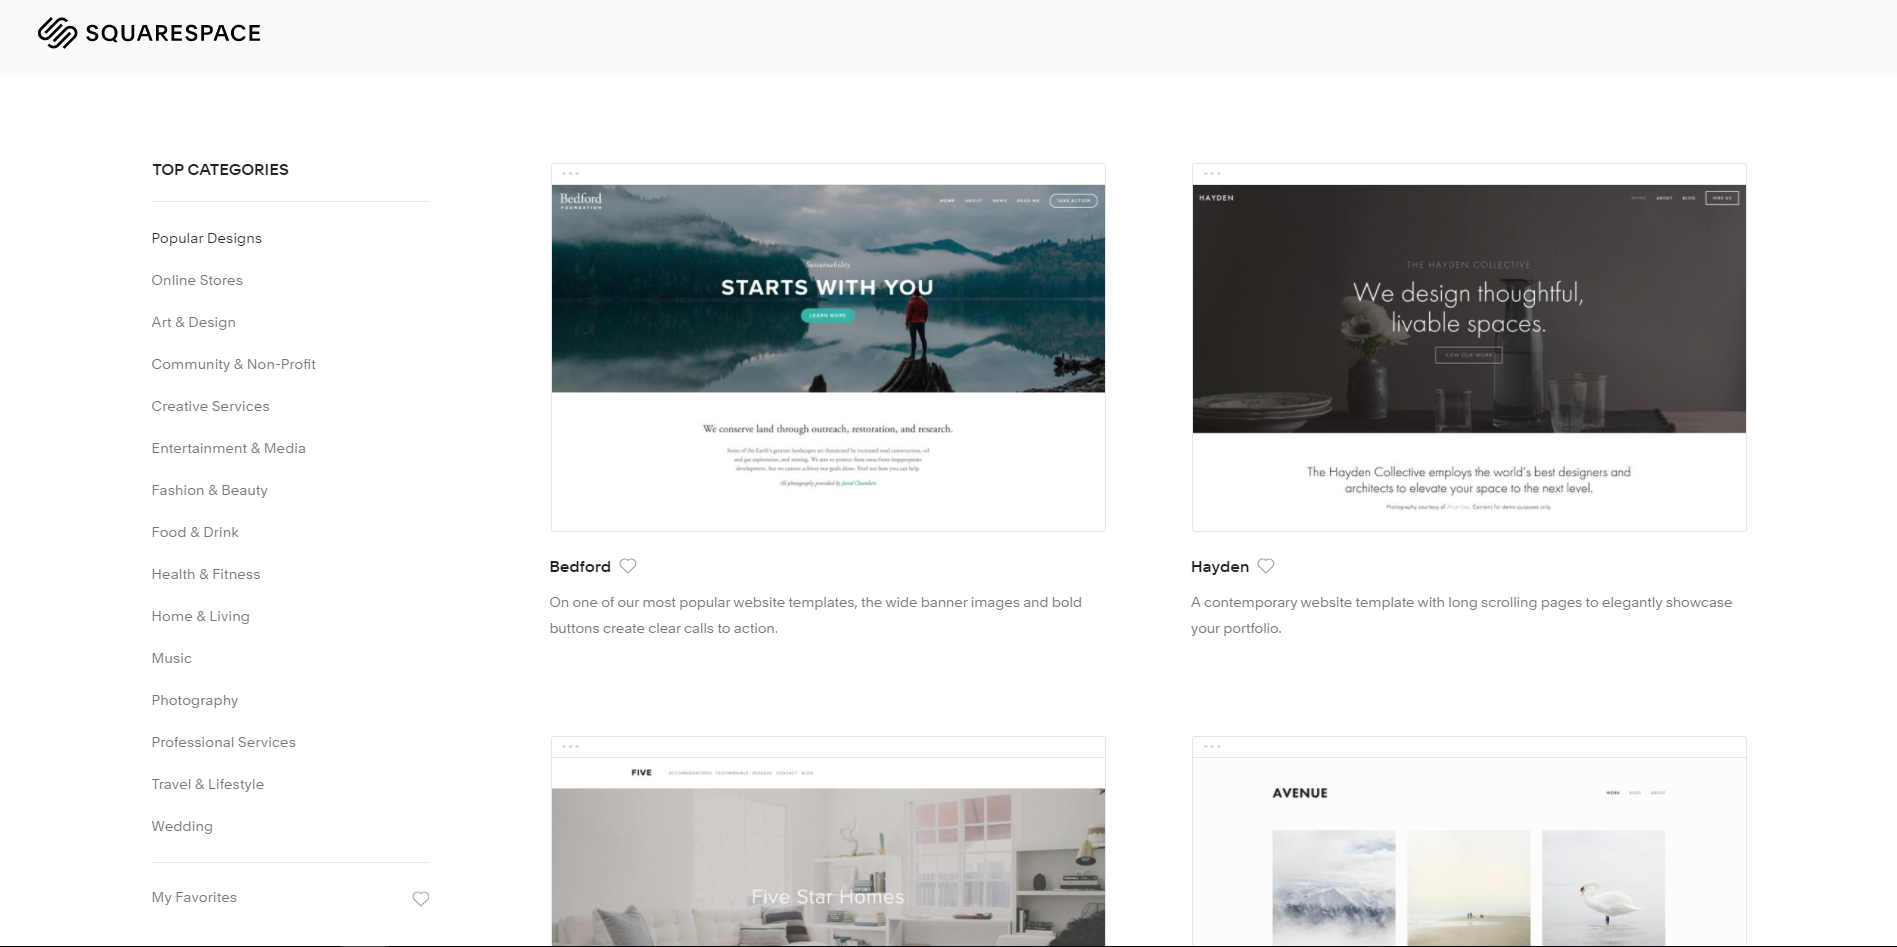 How many templates does Squarespace offer to help build your website.